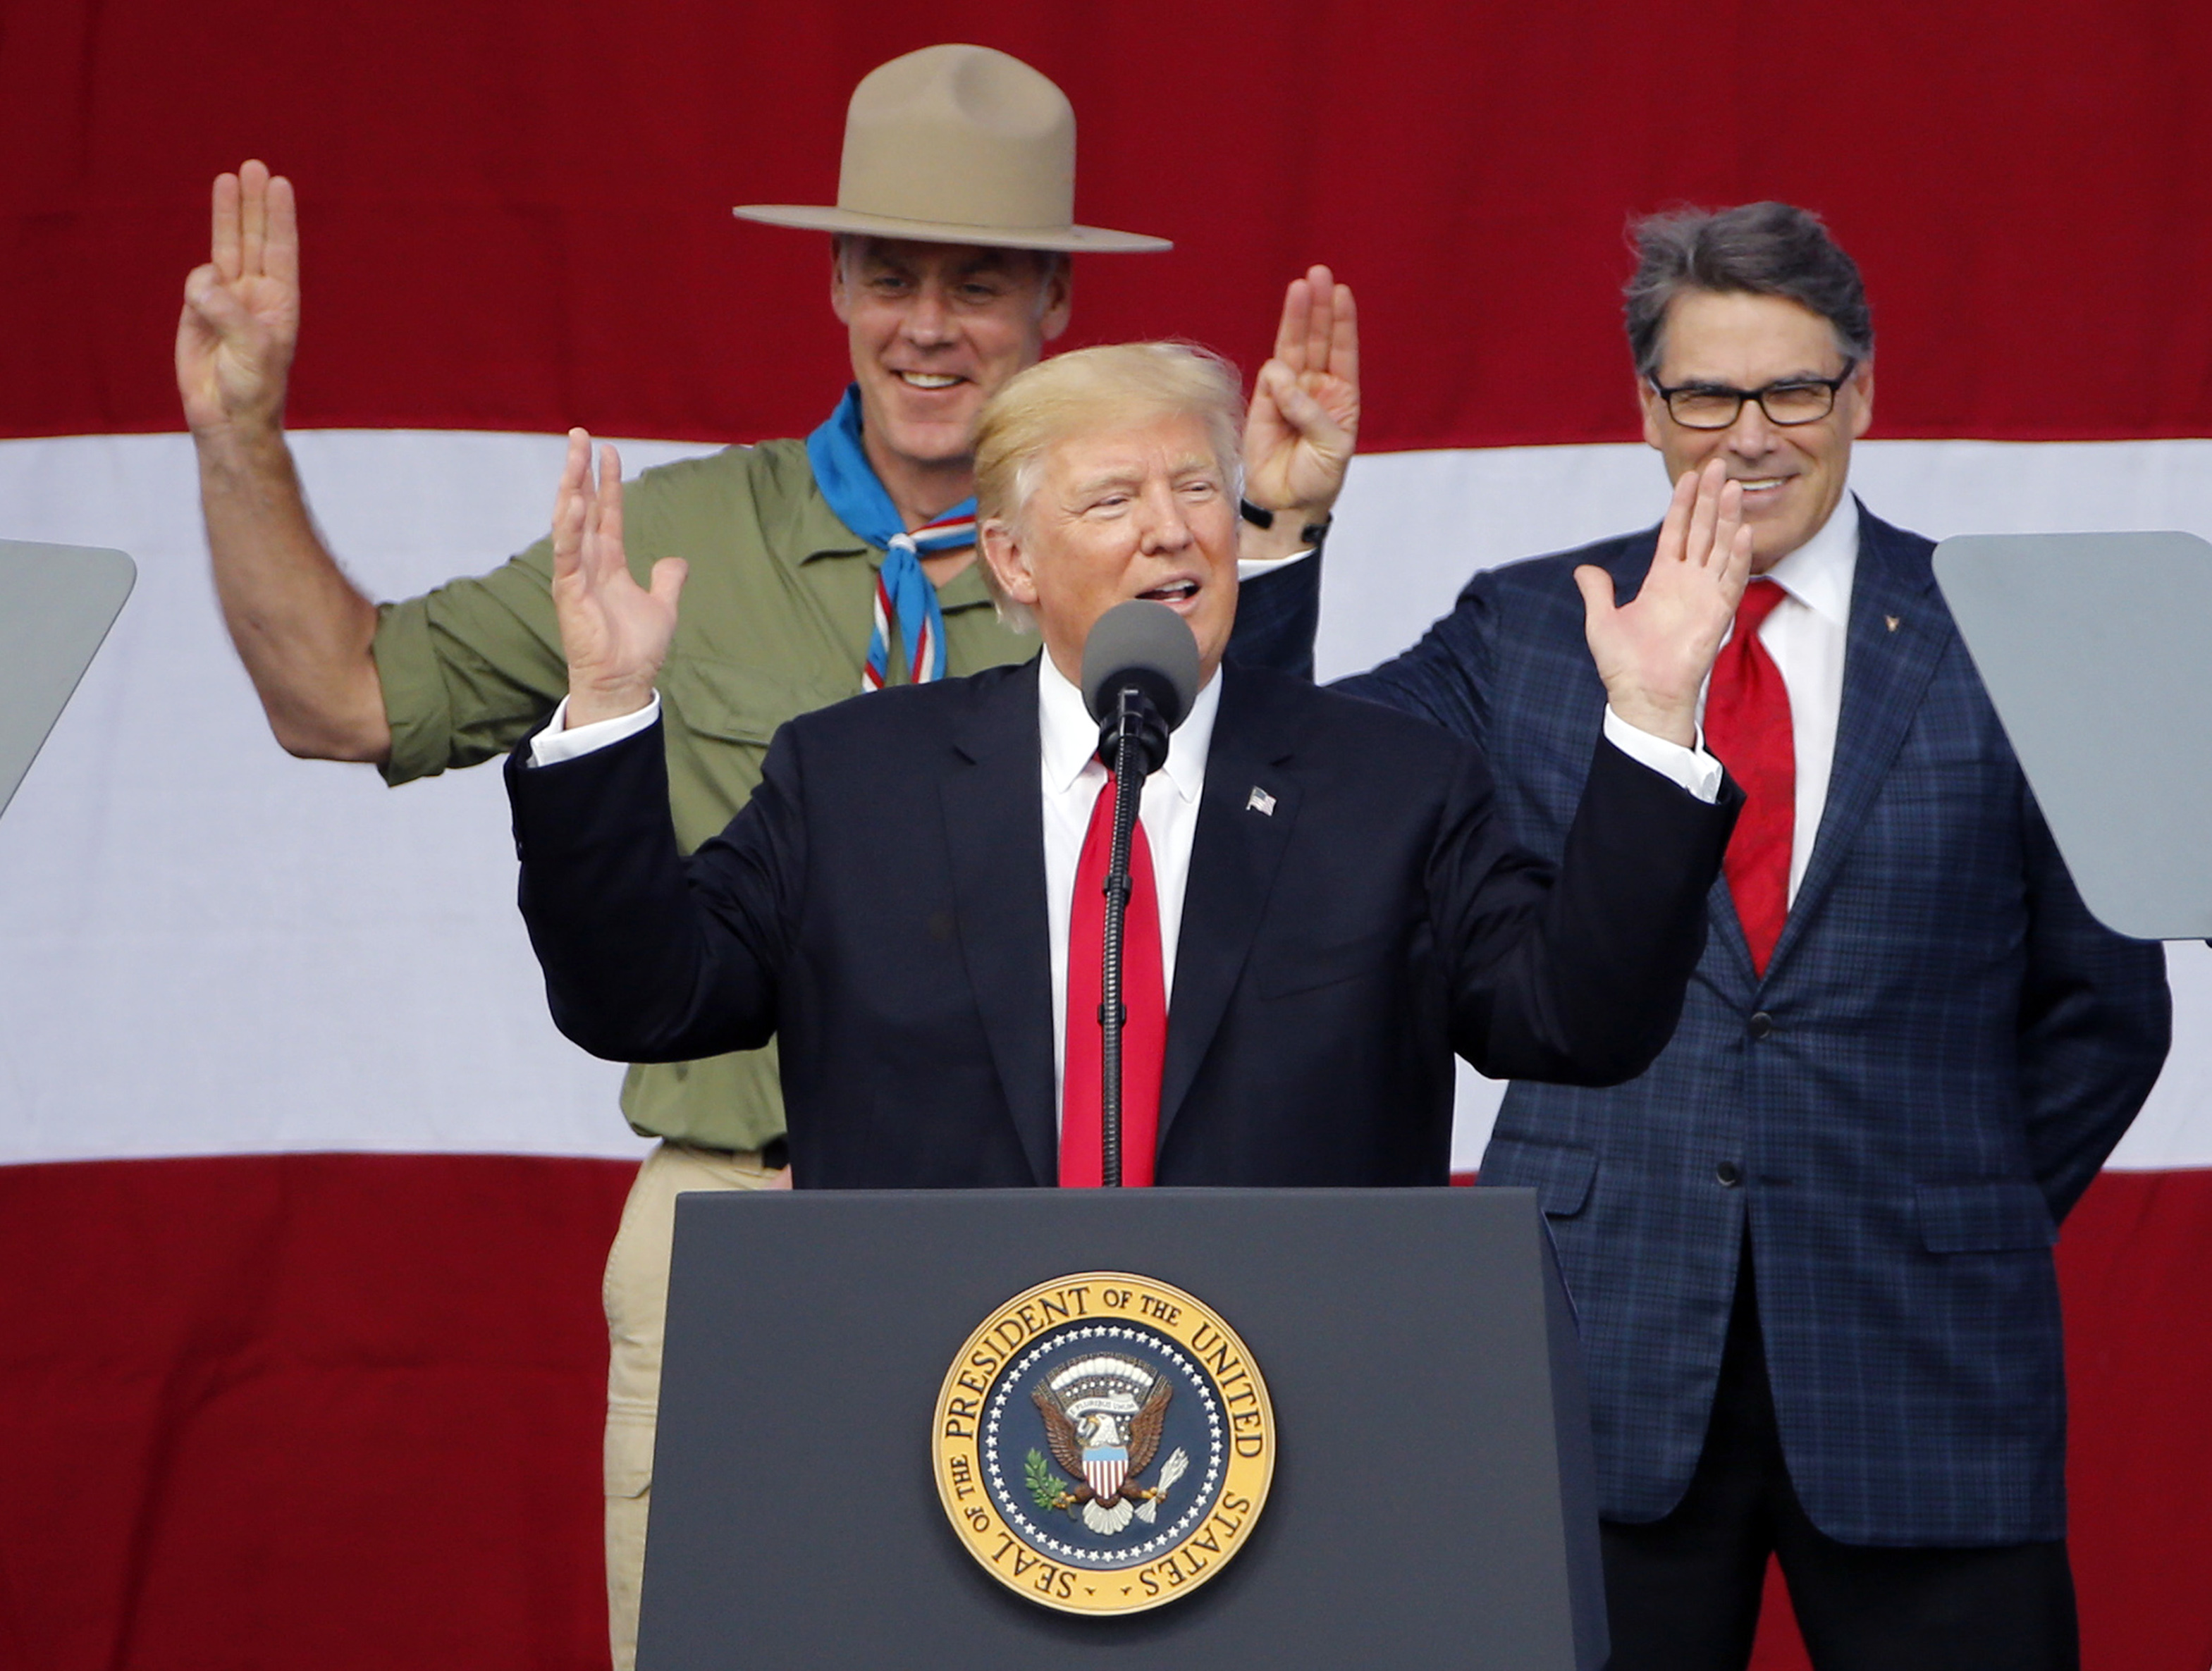 Trump holds Trump-style rally at Boy Scouts event